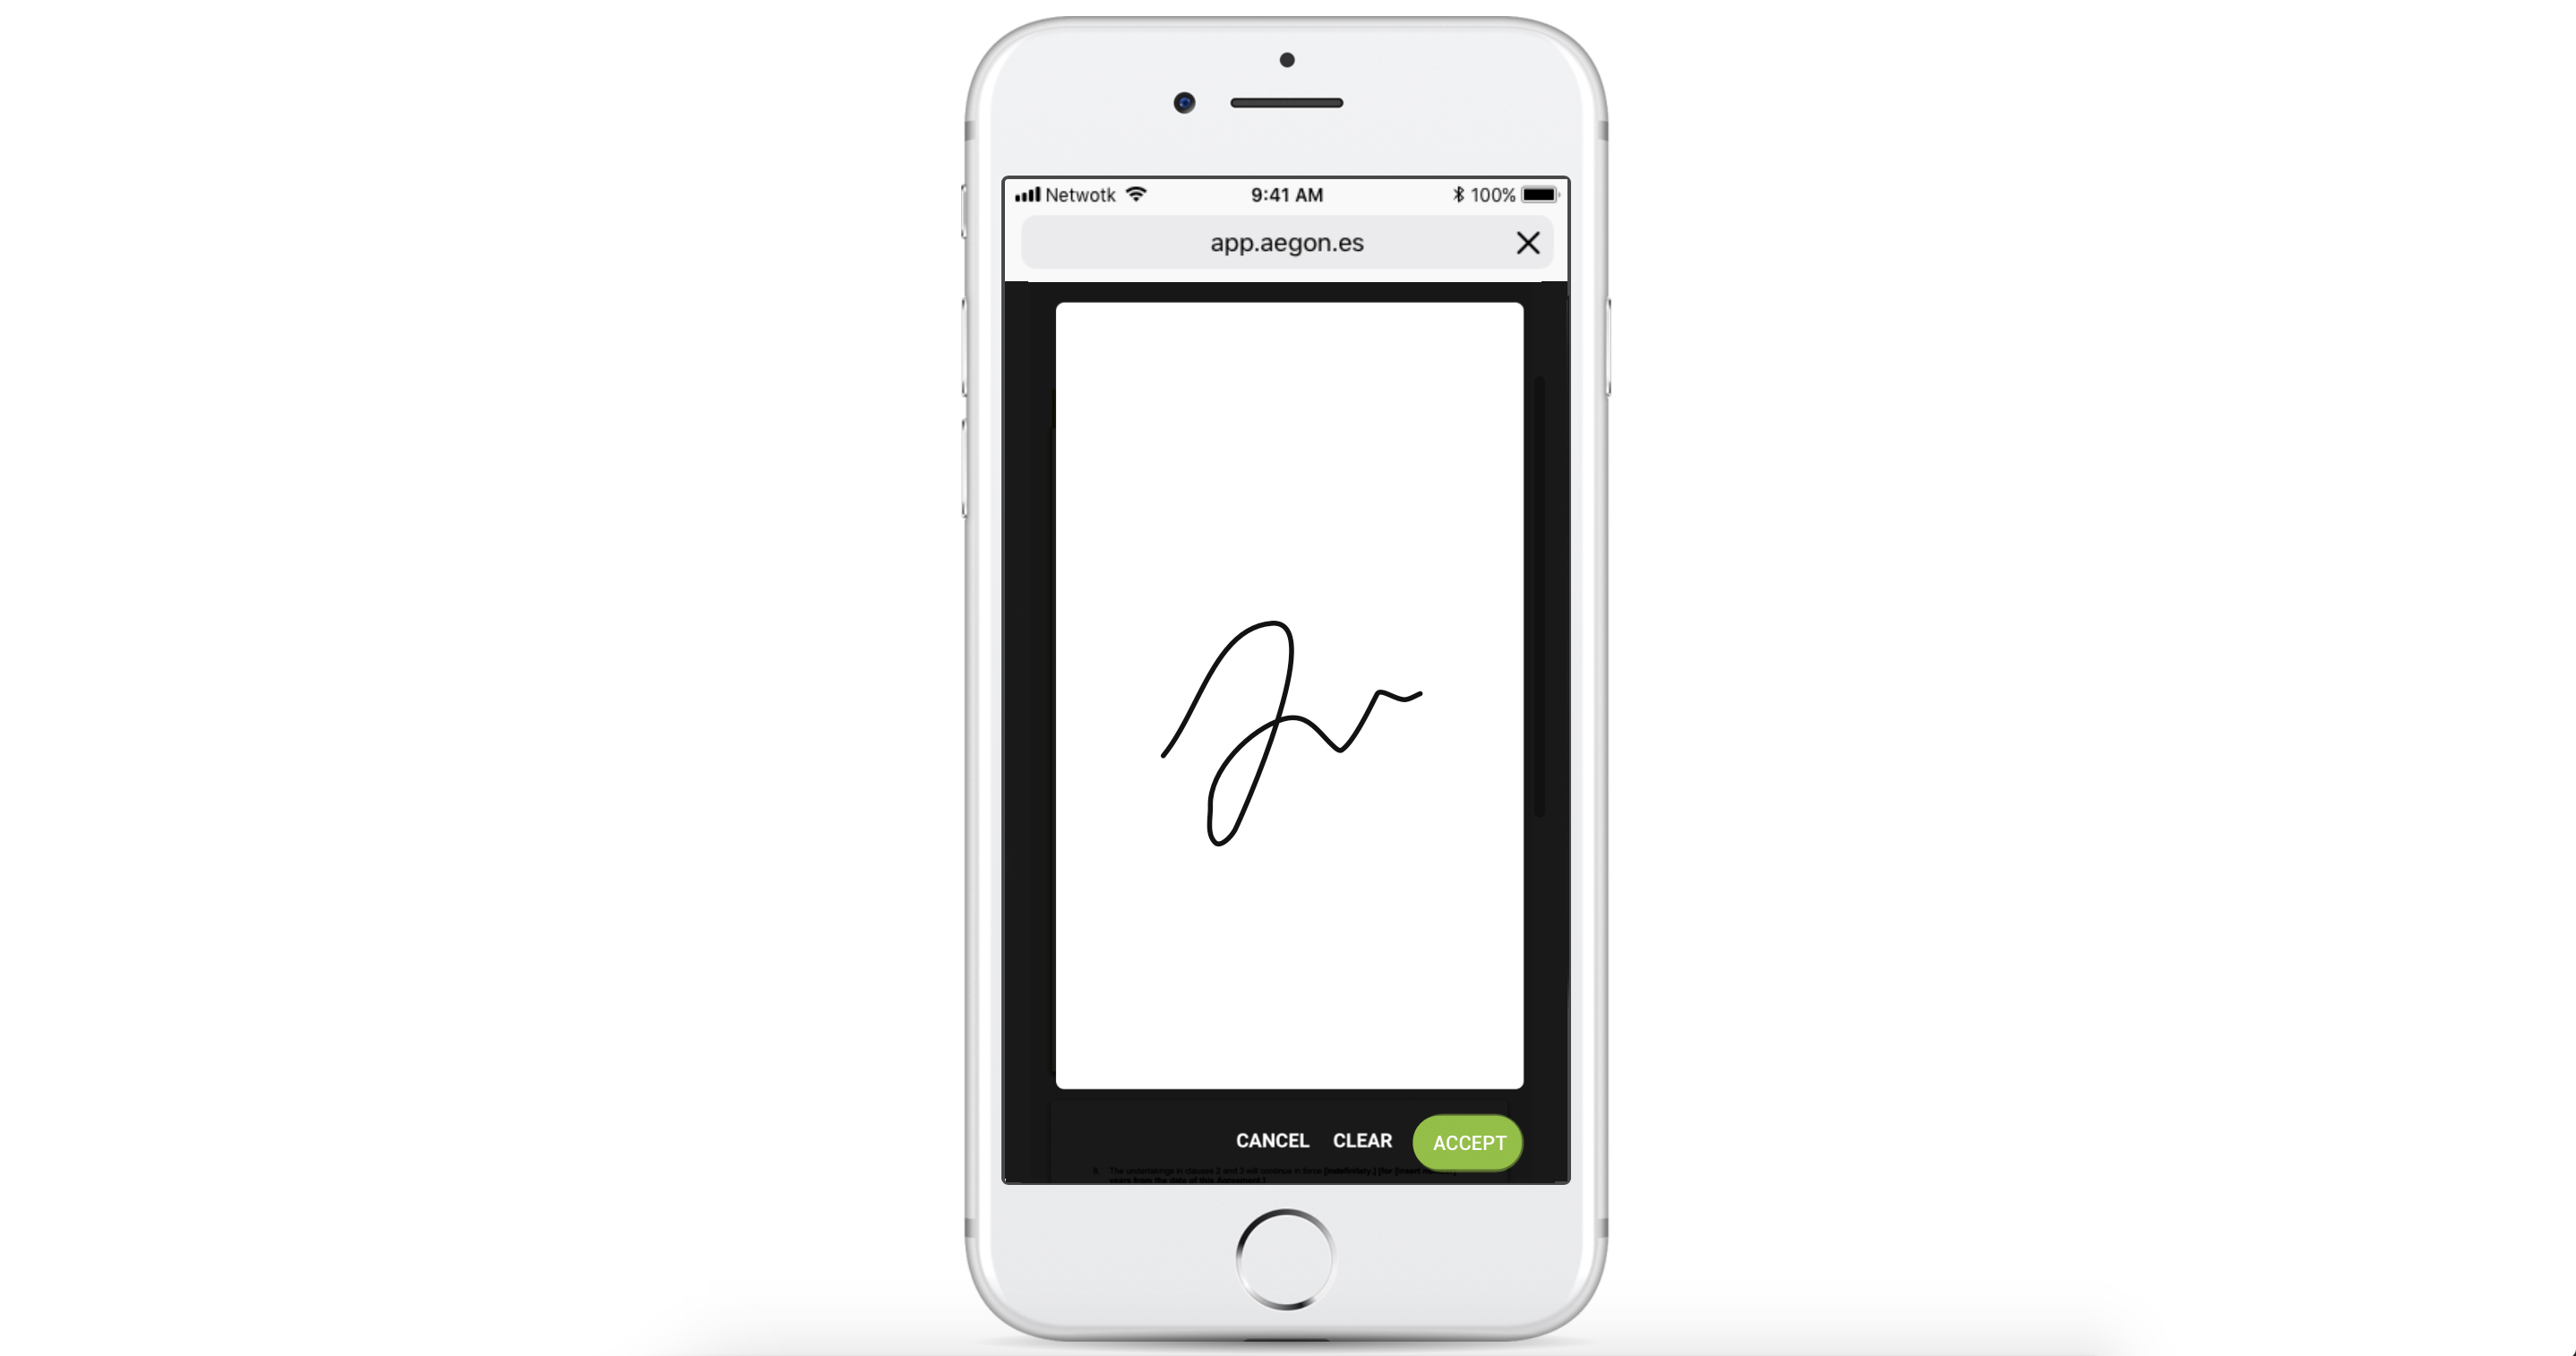 Completed signature